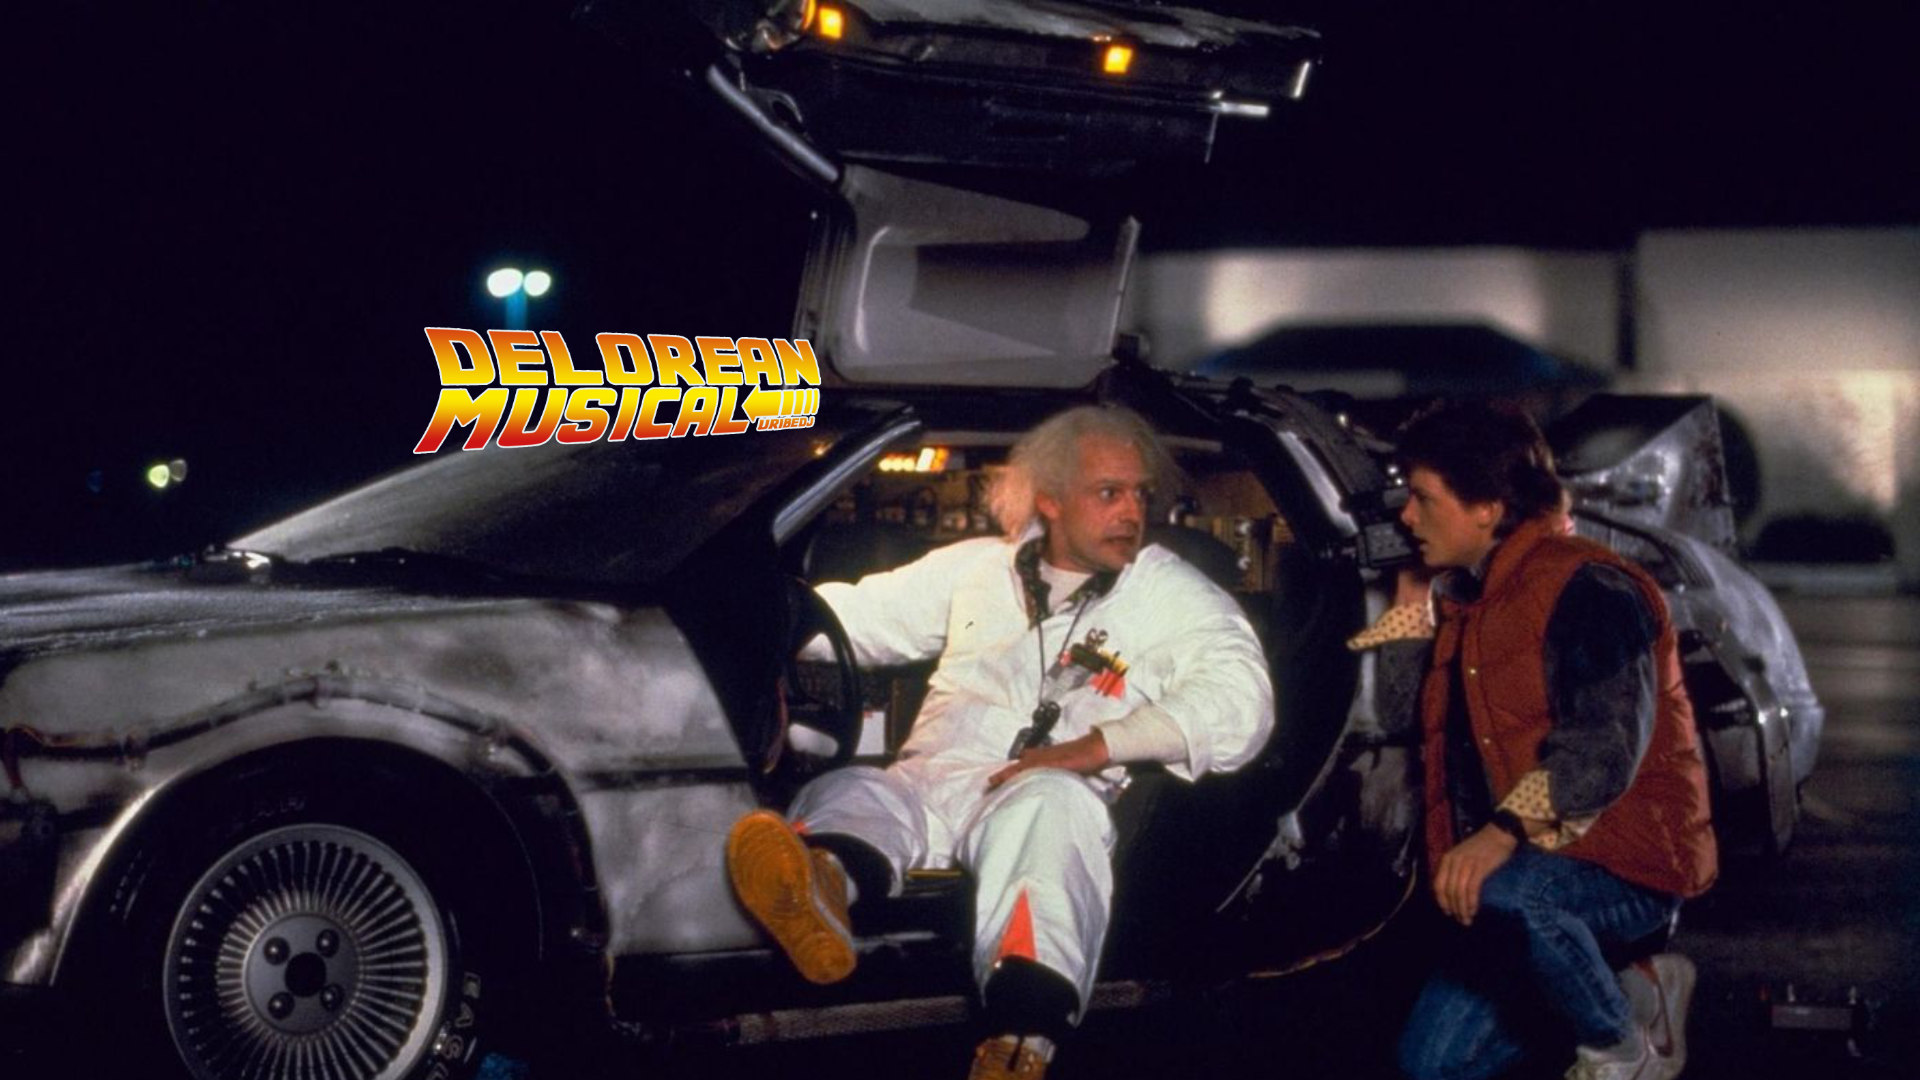 Delorean Musical episodio 7: La historia de 'Eye of Tiger'